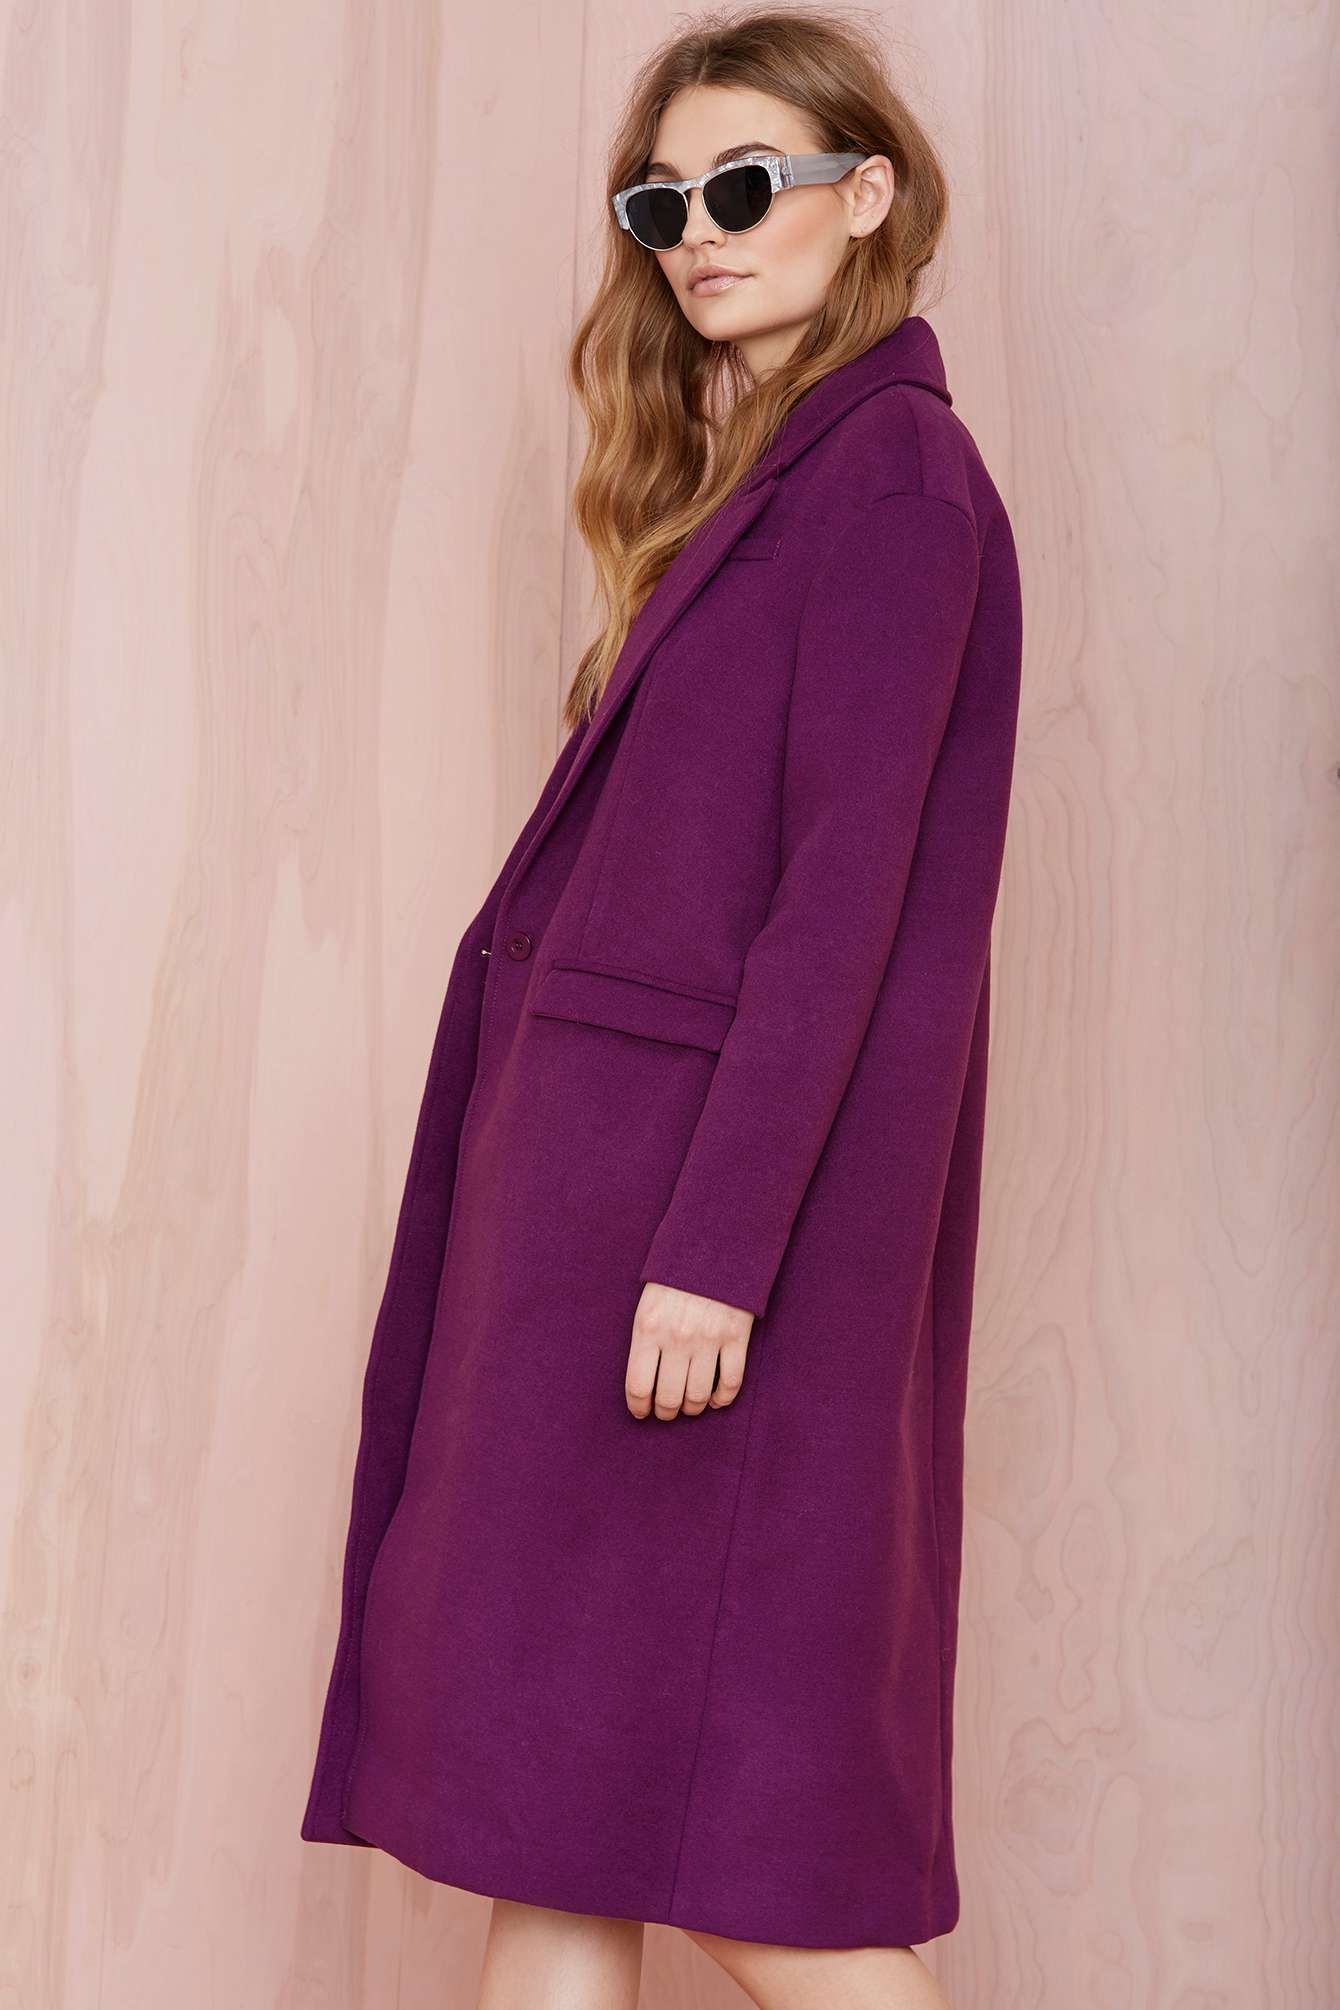 Women's purple wool coats – Jackets photo blog